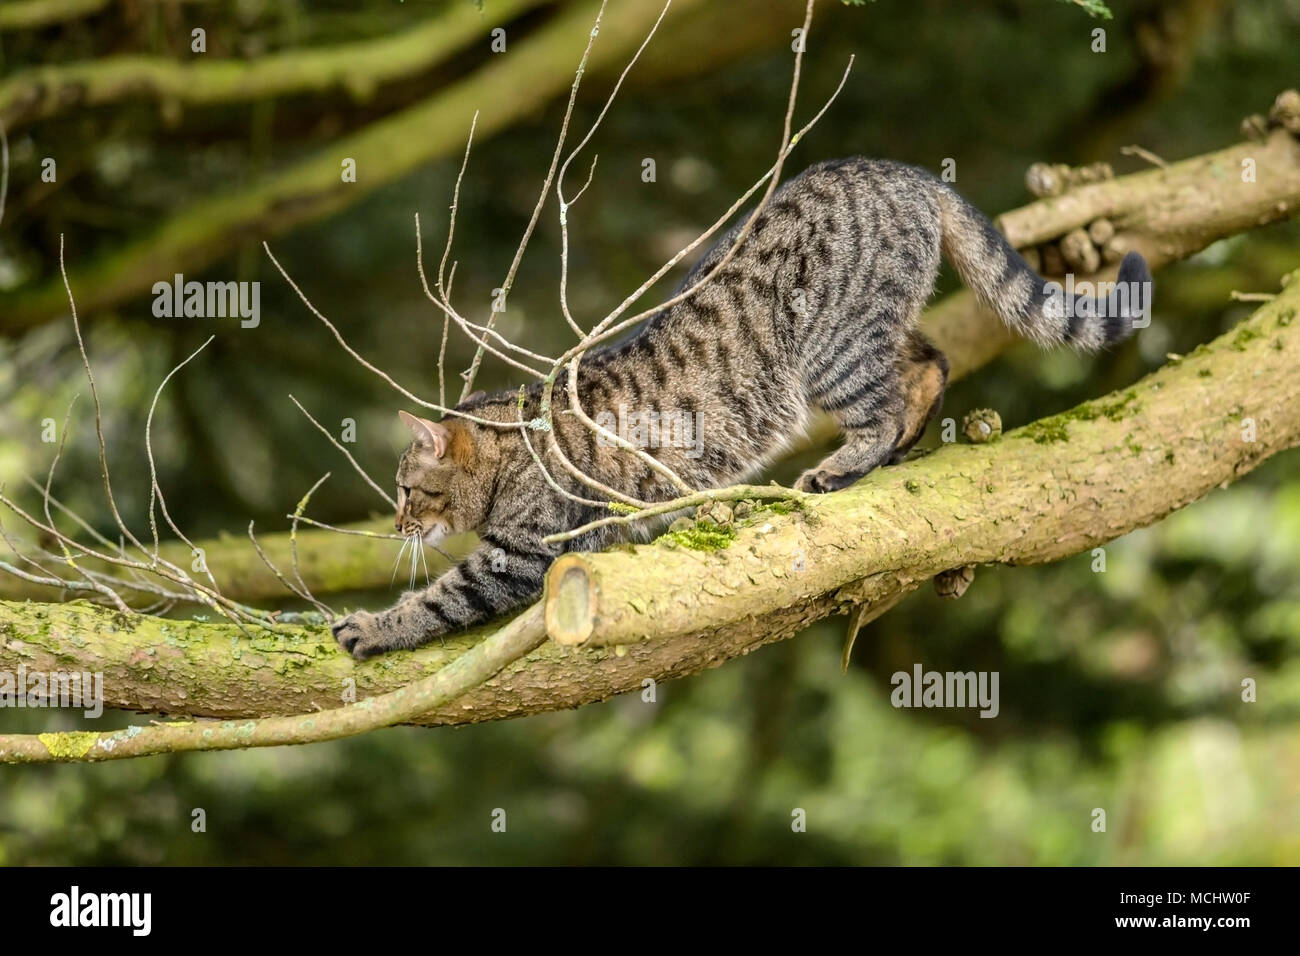 Young tabby cat, bengal cat climbing a Monterey Cyprus tree, high up on it's branches, stretching out. - Stock Image